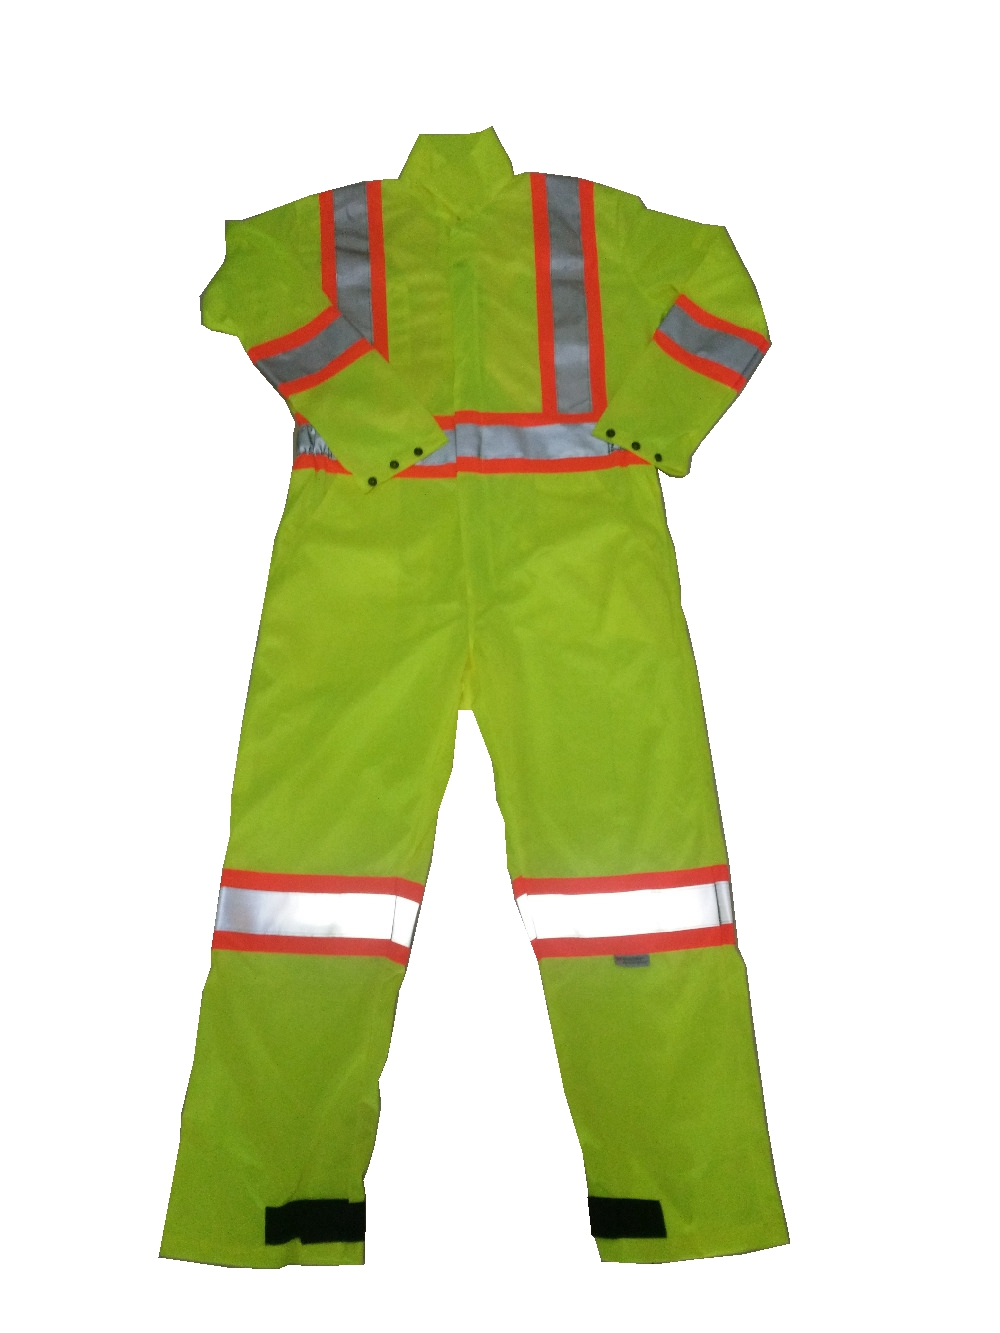 Fluorescence Yellow High Visibility Safety workwear Hi Viz Work Coat coverall workwear coveralls suits подушка 40х40 с полной запечаткой printio zdermm431